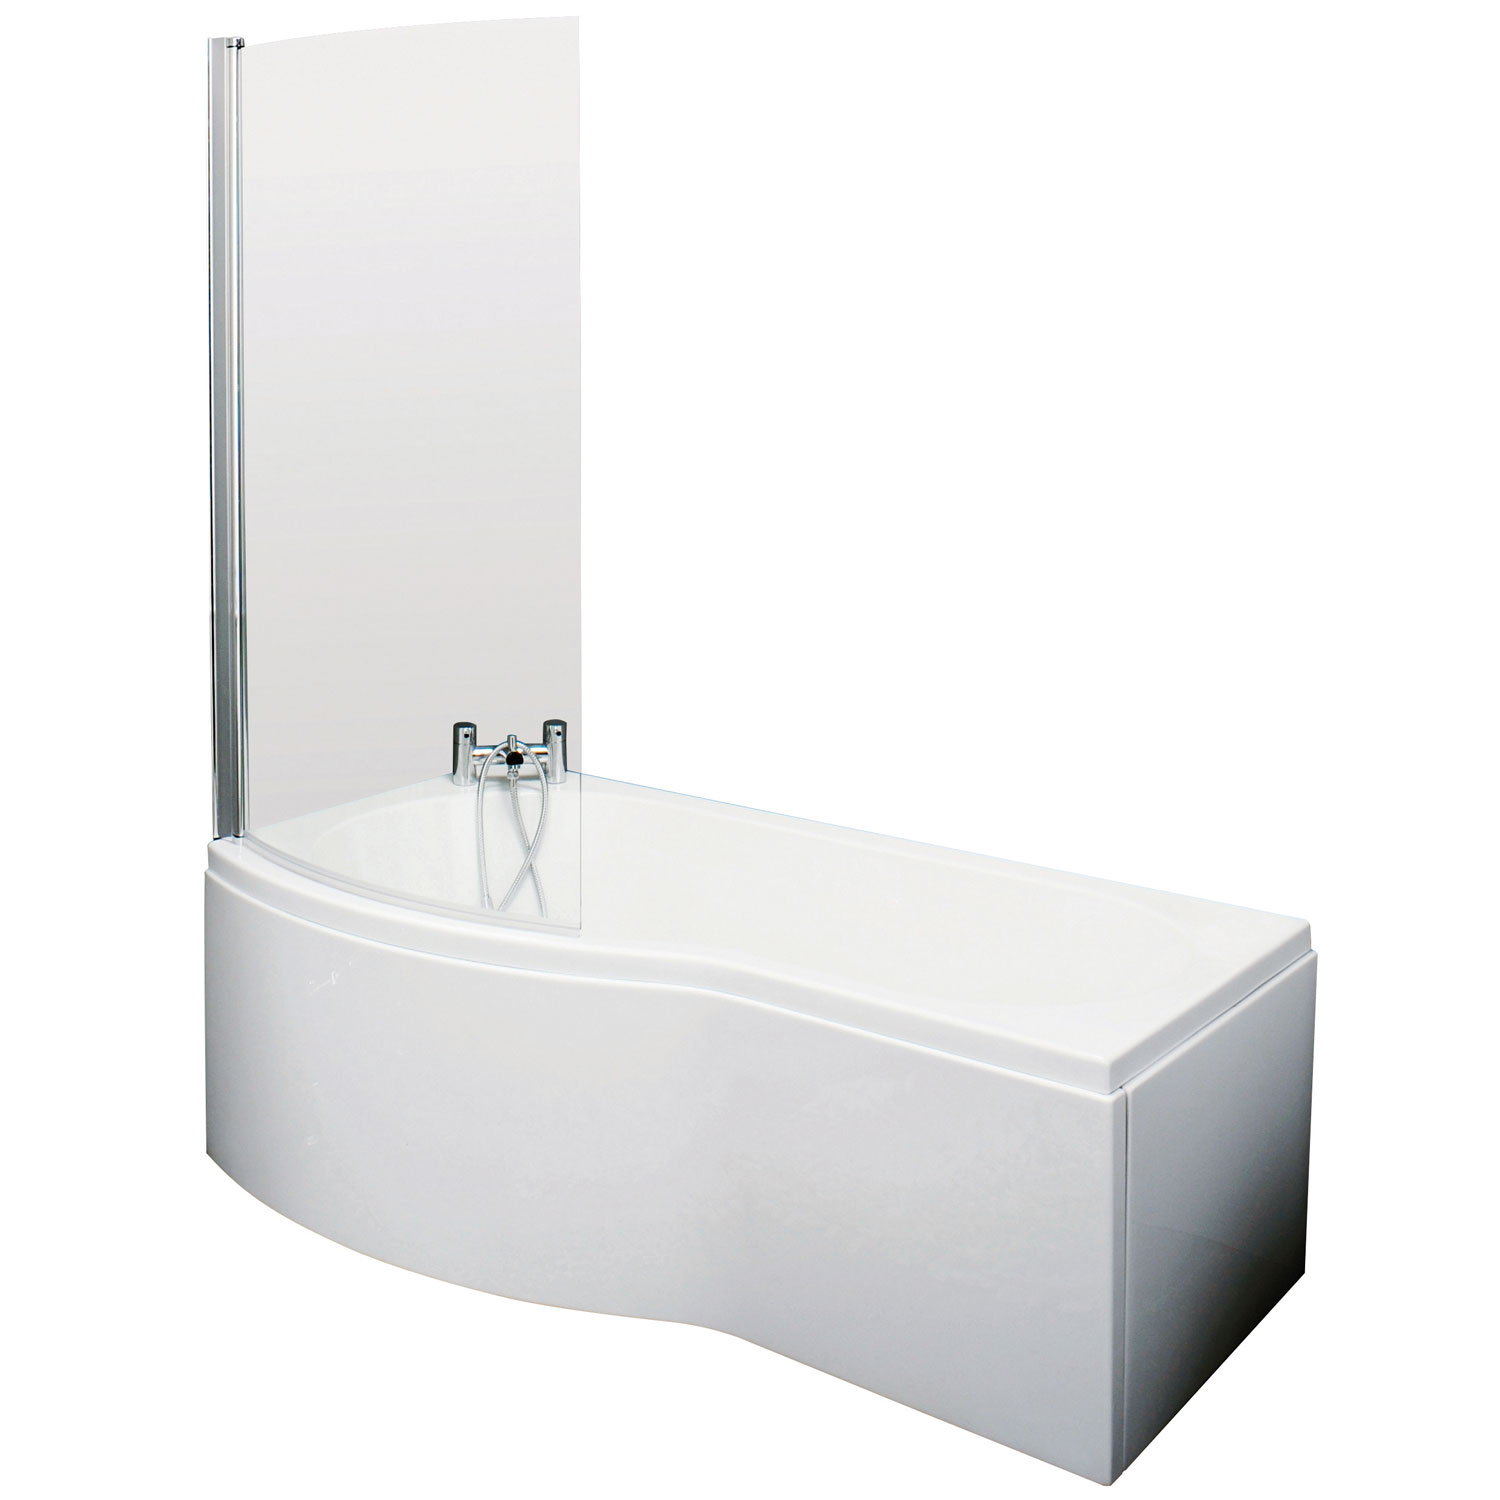 Premier B-Shaped Shower Bath with Front Panel and Screen 1700mm x 735mm/800mm - Left Handed